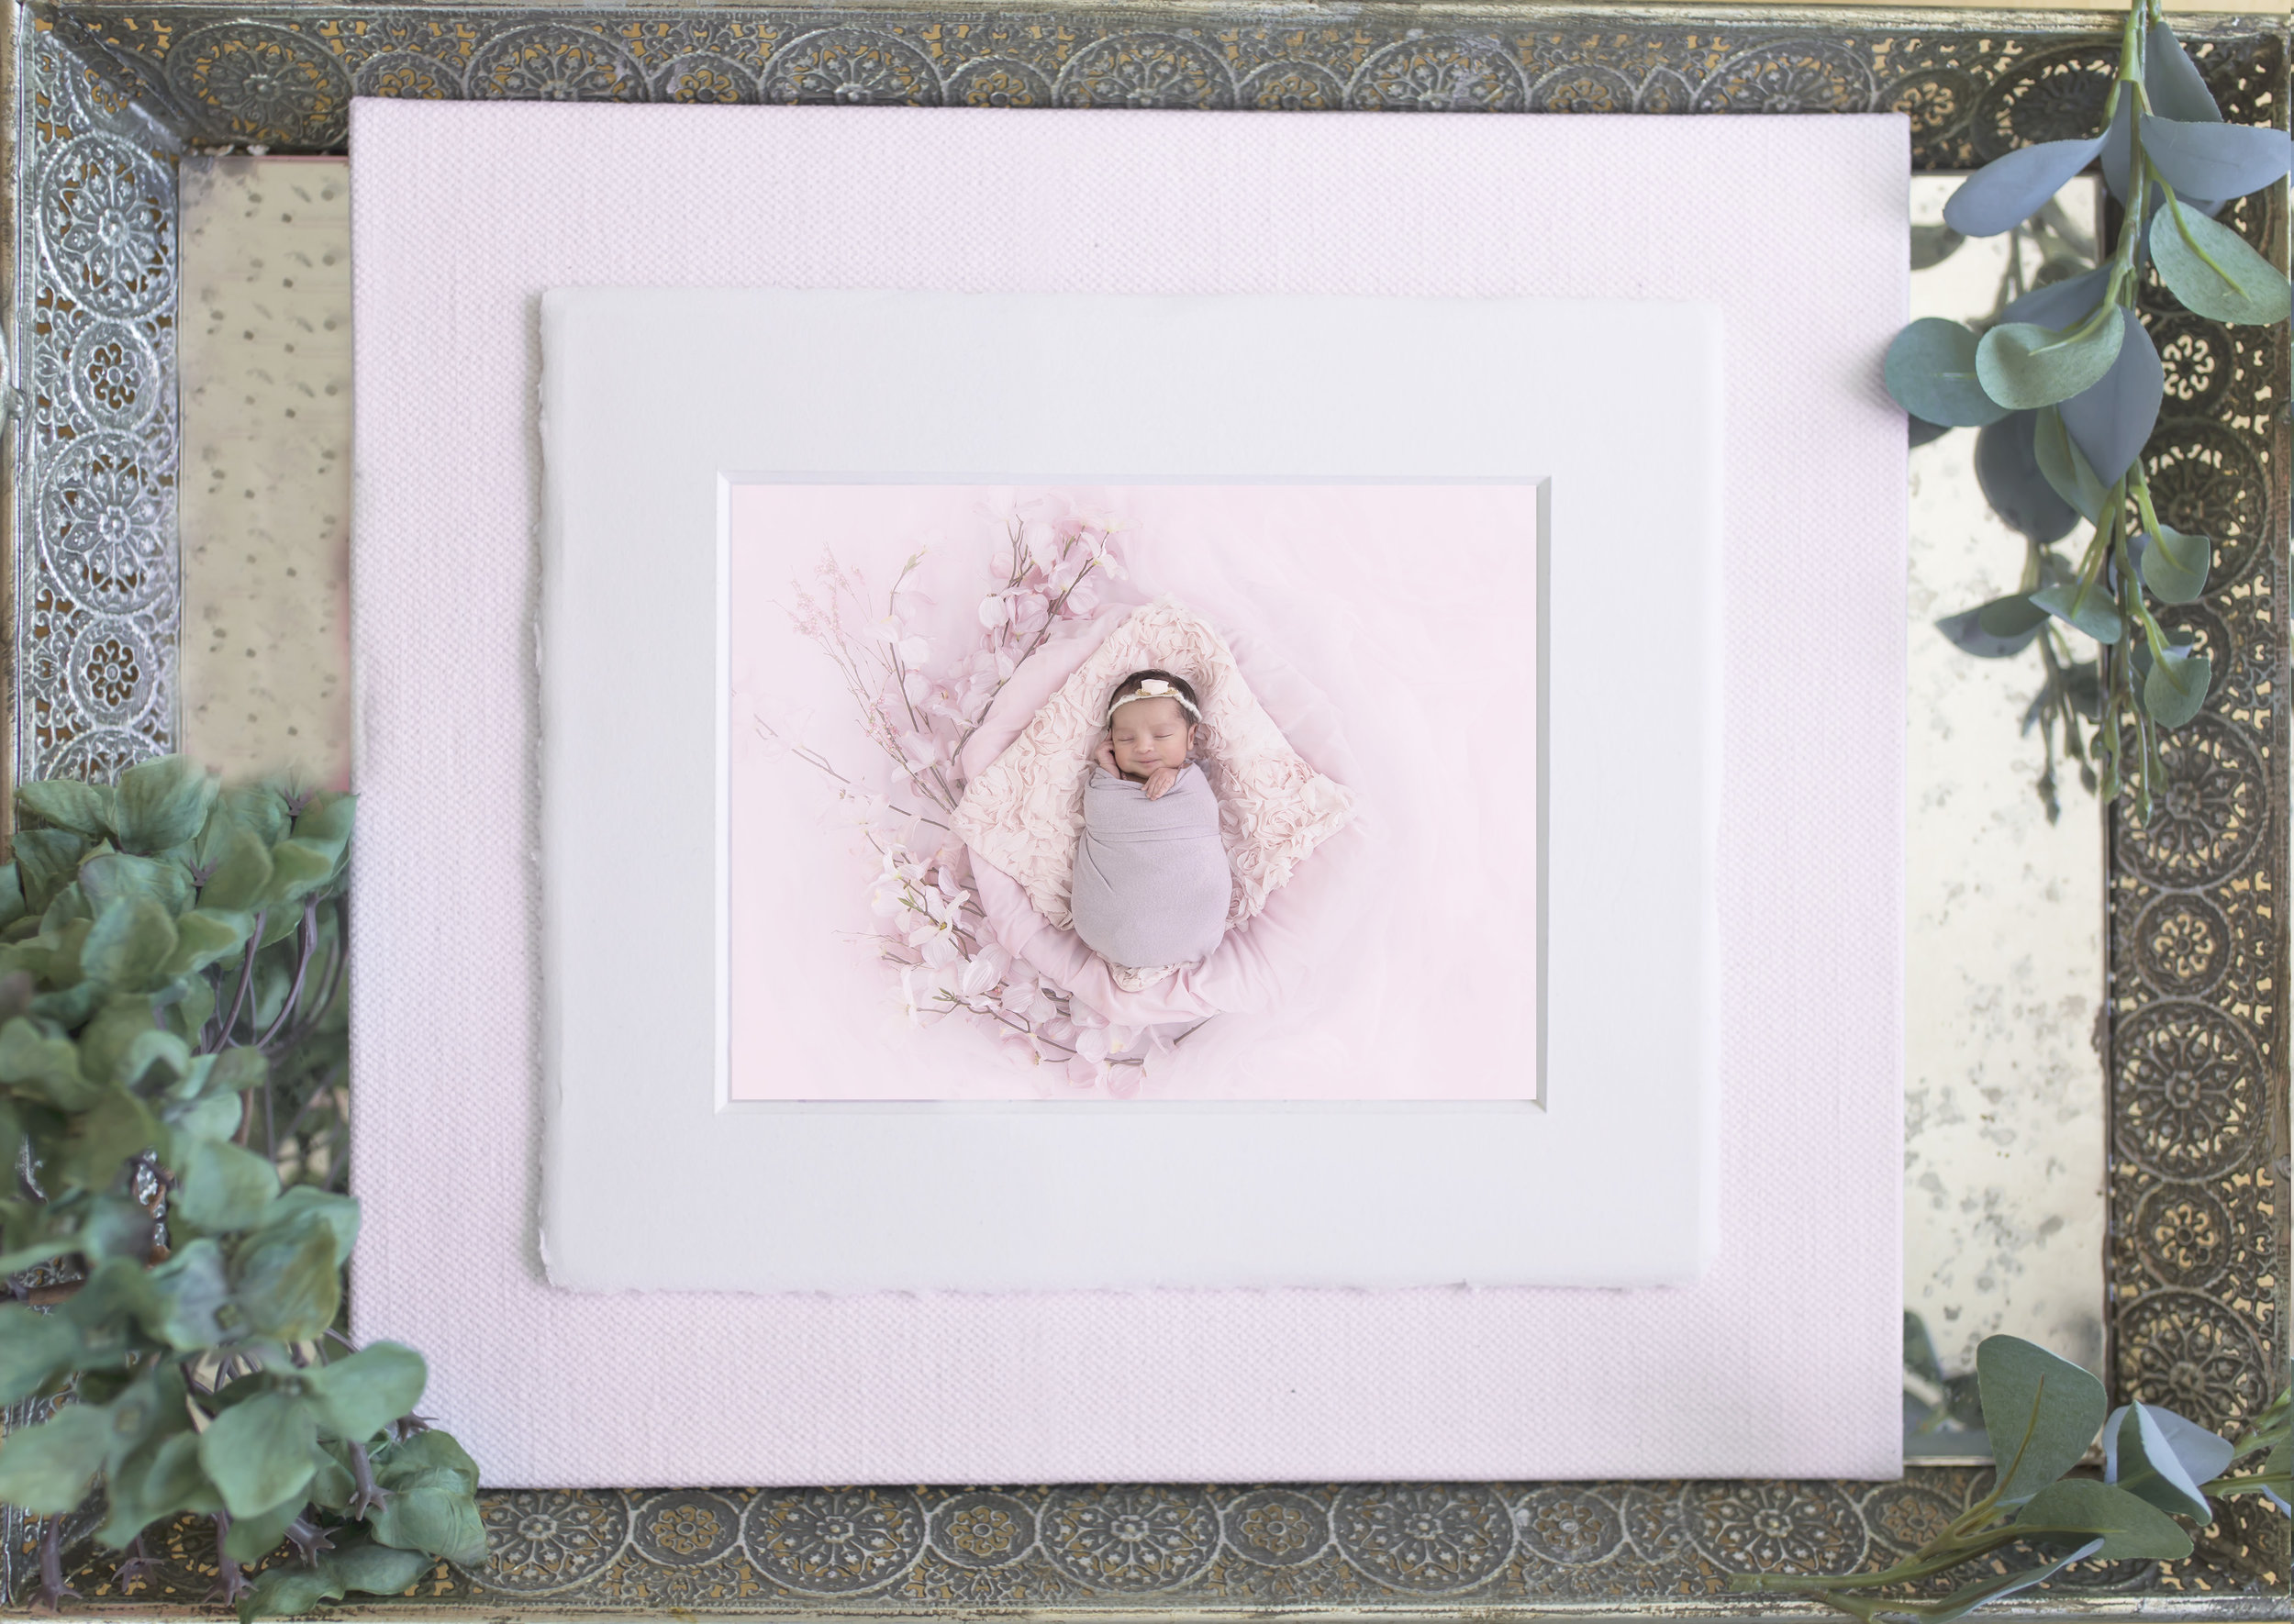 Belle Panel - Your image matted on this ethereal and artistic torn-edge board, then mounted on a fabric panel and arrives ready-to-hang.Select from 30+ color and fabric options (such as linen or wood) for the panel. Size upgrades available upon request.